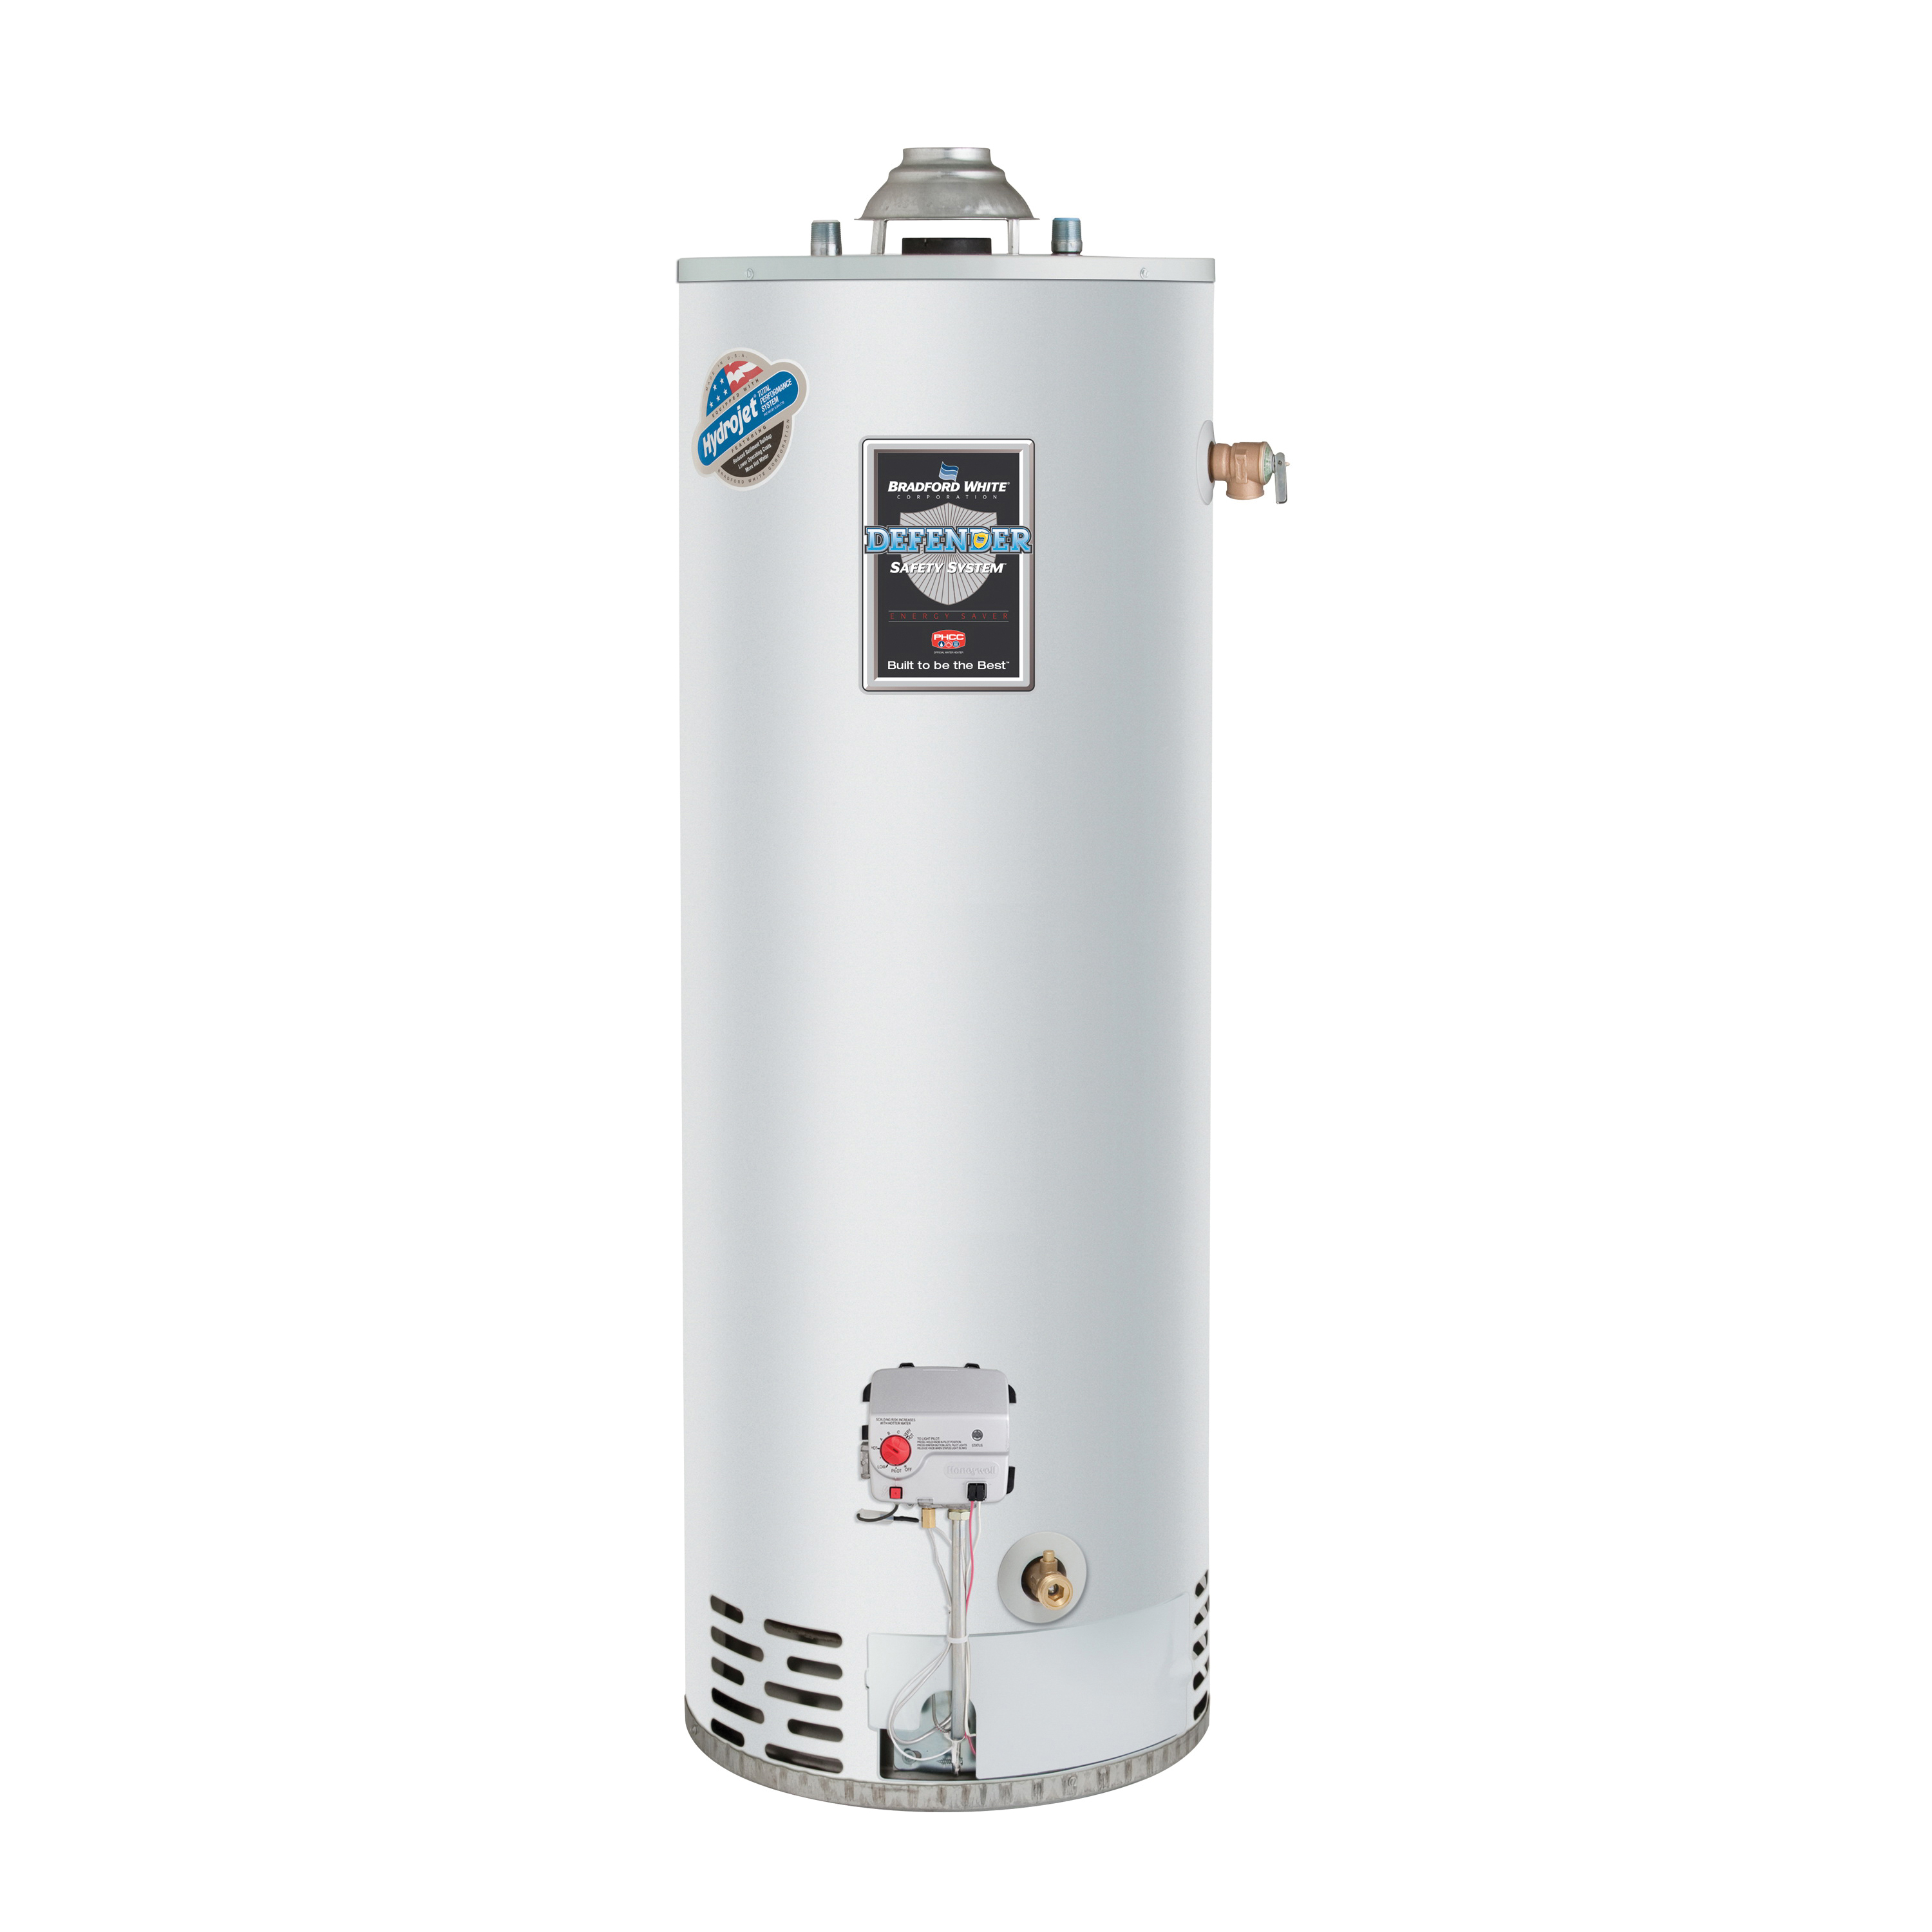 Bradford White RG240T6N 40 Gal Defender Safety System Atmospheric Vent Energy Saver Natural Gas Tall Water Heater, 40K BTU